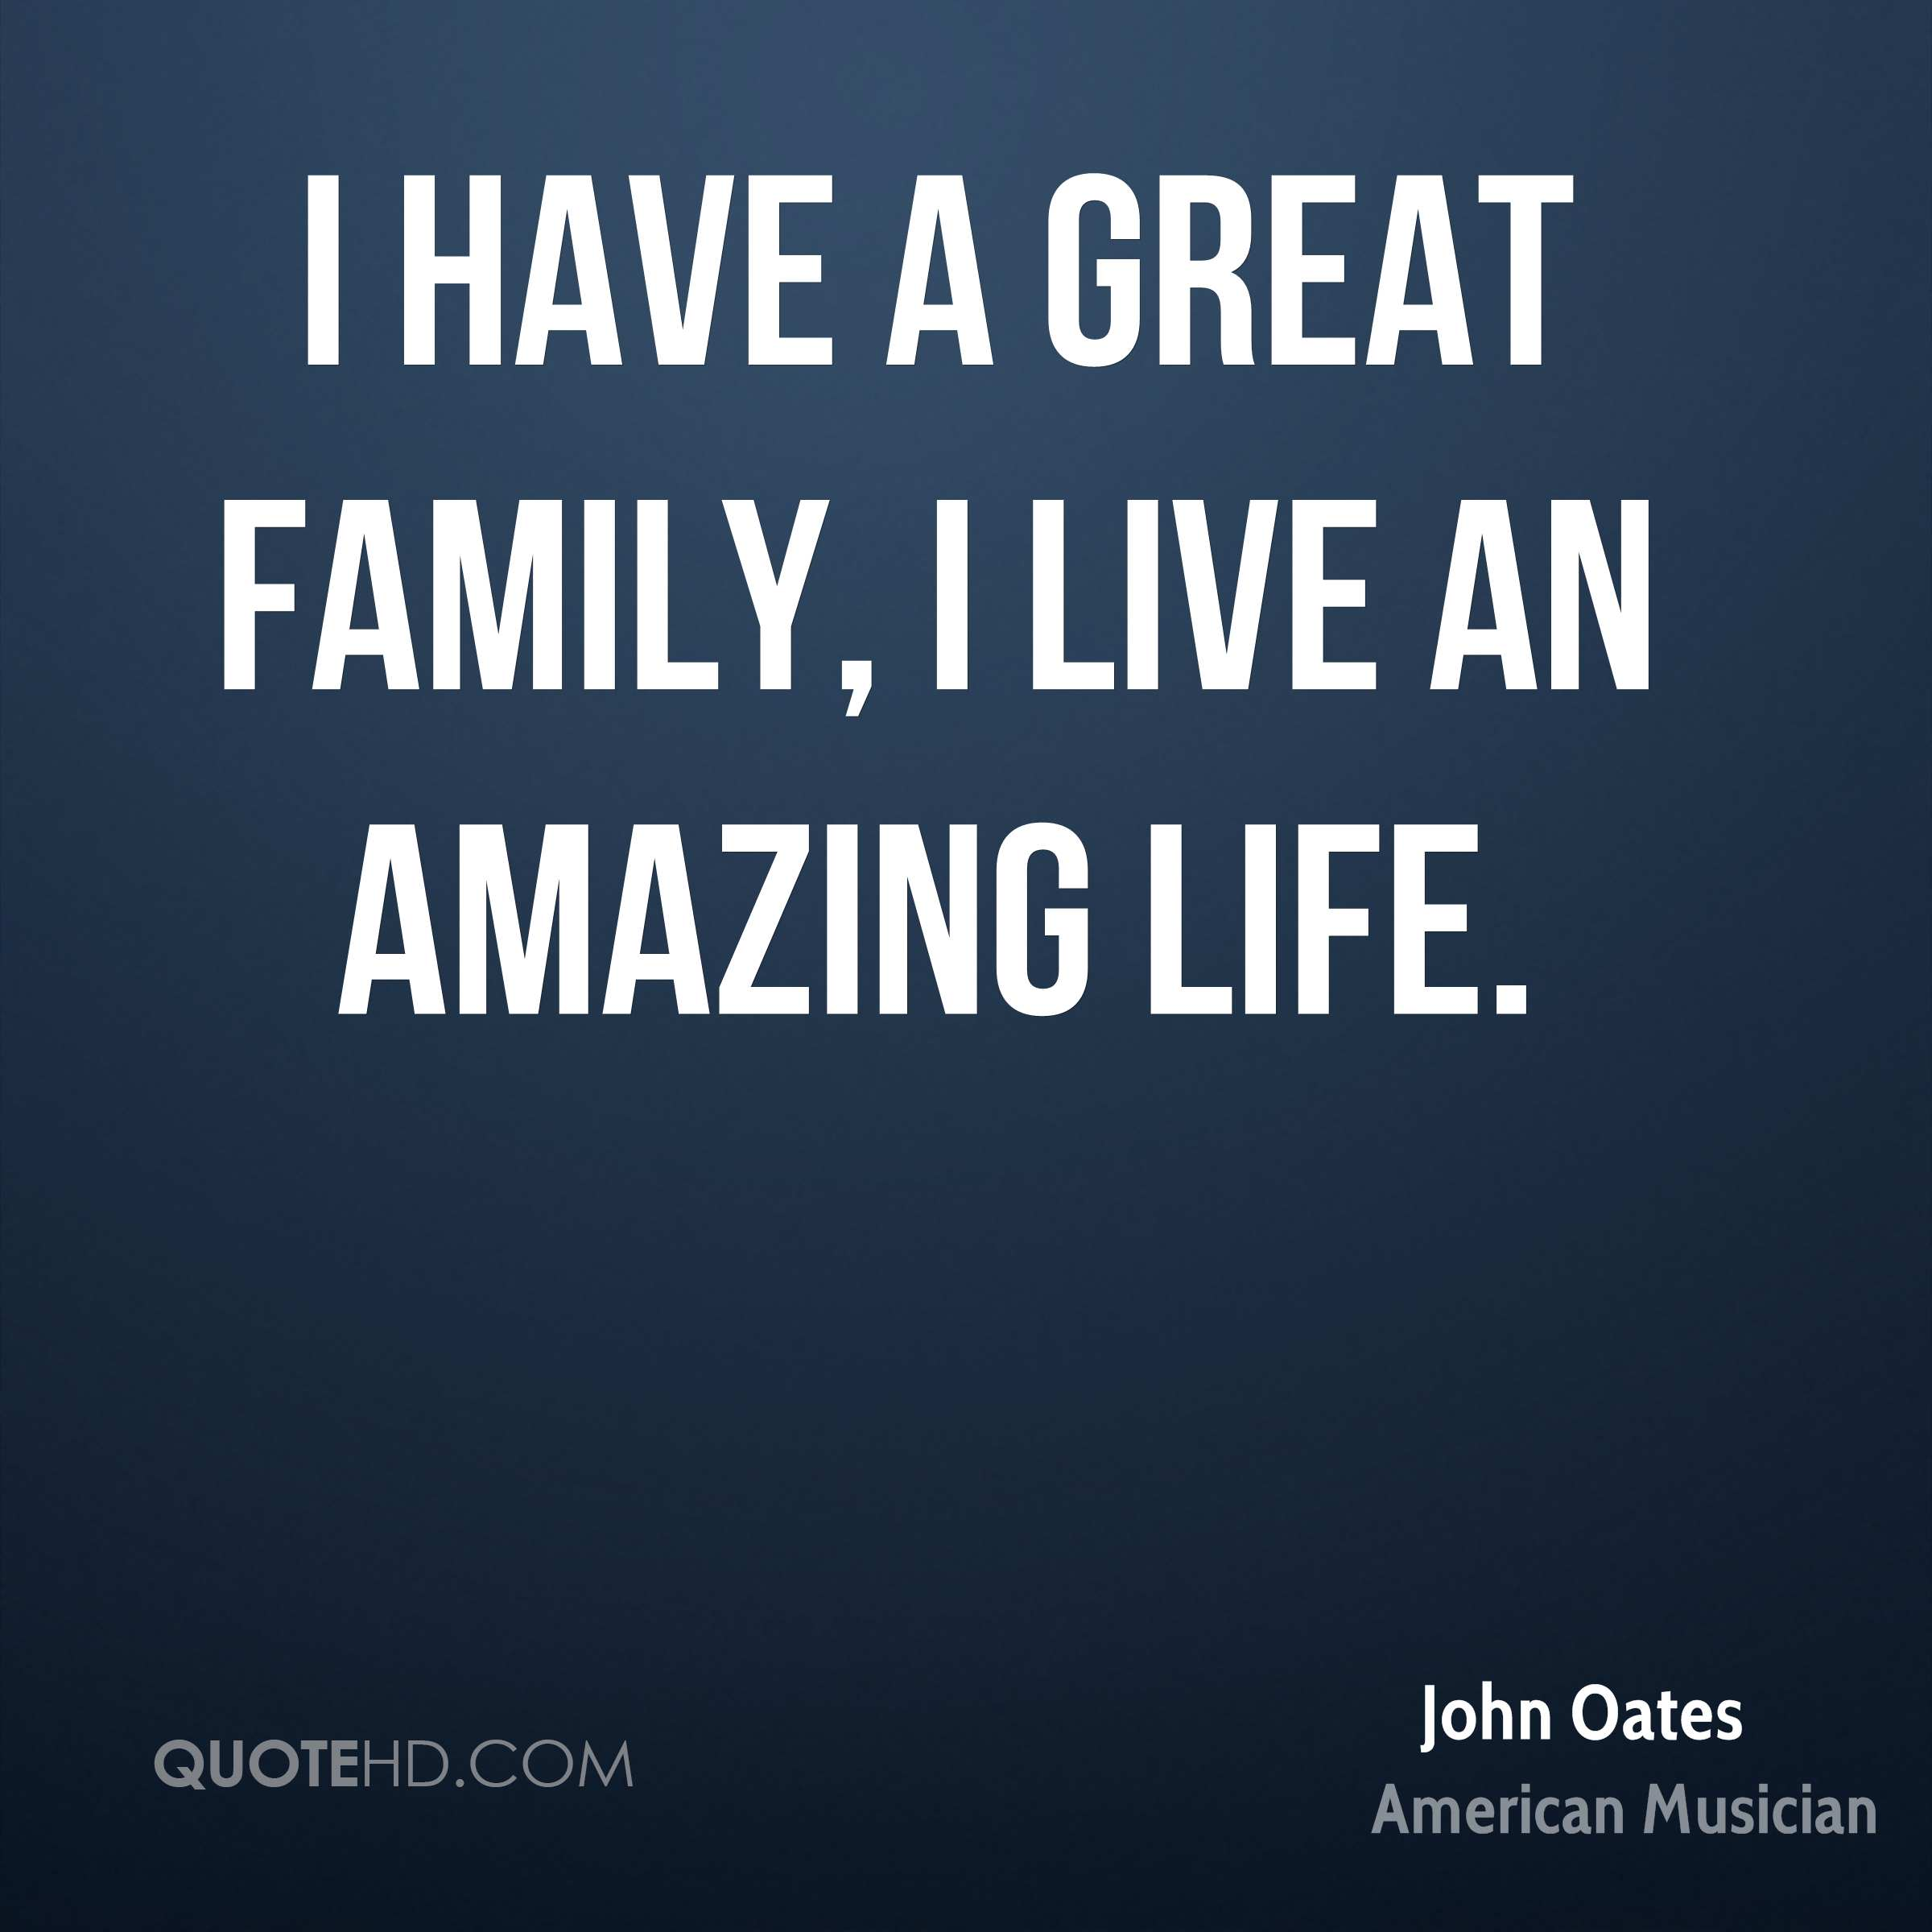 I have a great family, I live an amazing life.